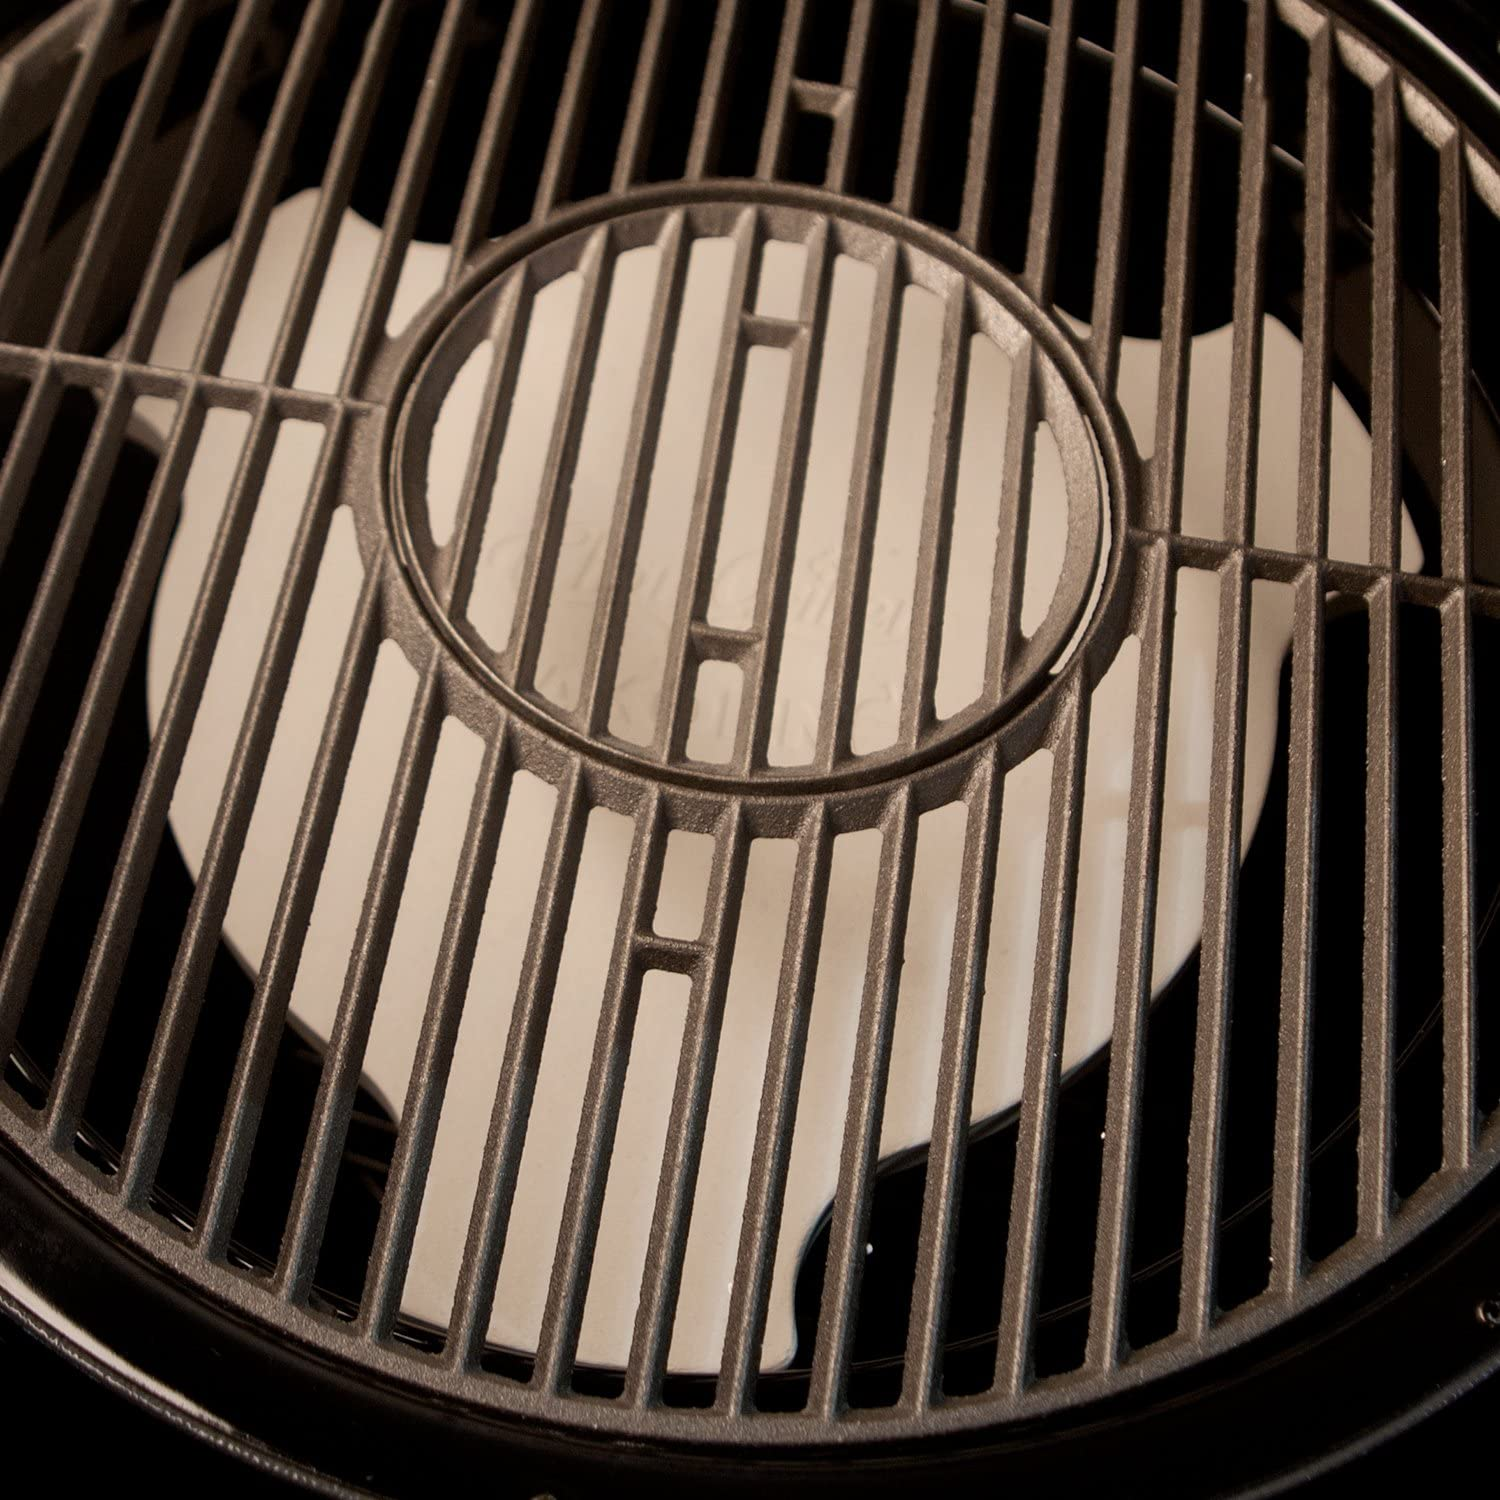 Char-Griller 6201 AKORN Smokin Ceramic Smoking Stone, Ivory : Combination Grill Brushes And Scrapers : Garden & Outdoor